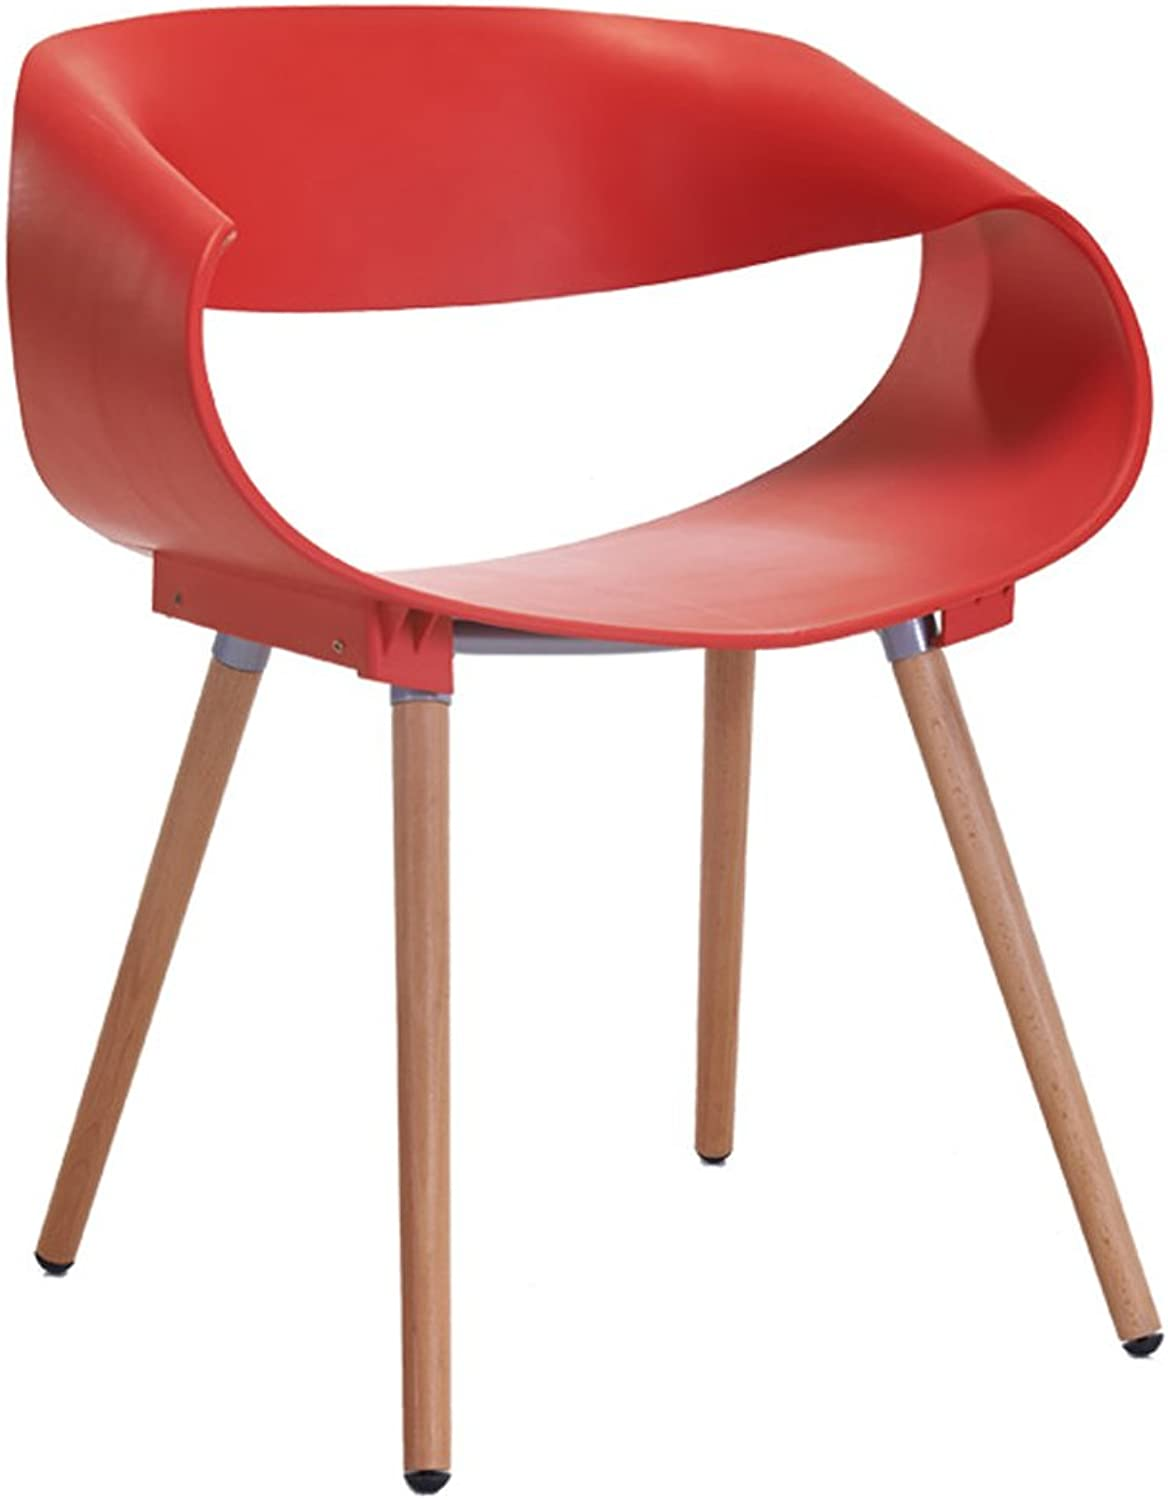 LRW Modern Chair Styled Plastic Backrest Armchair